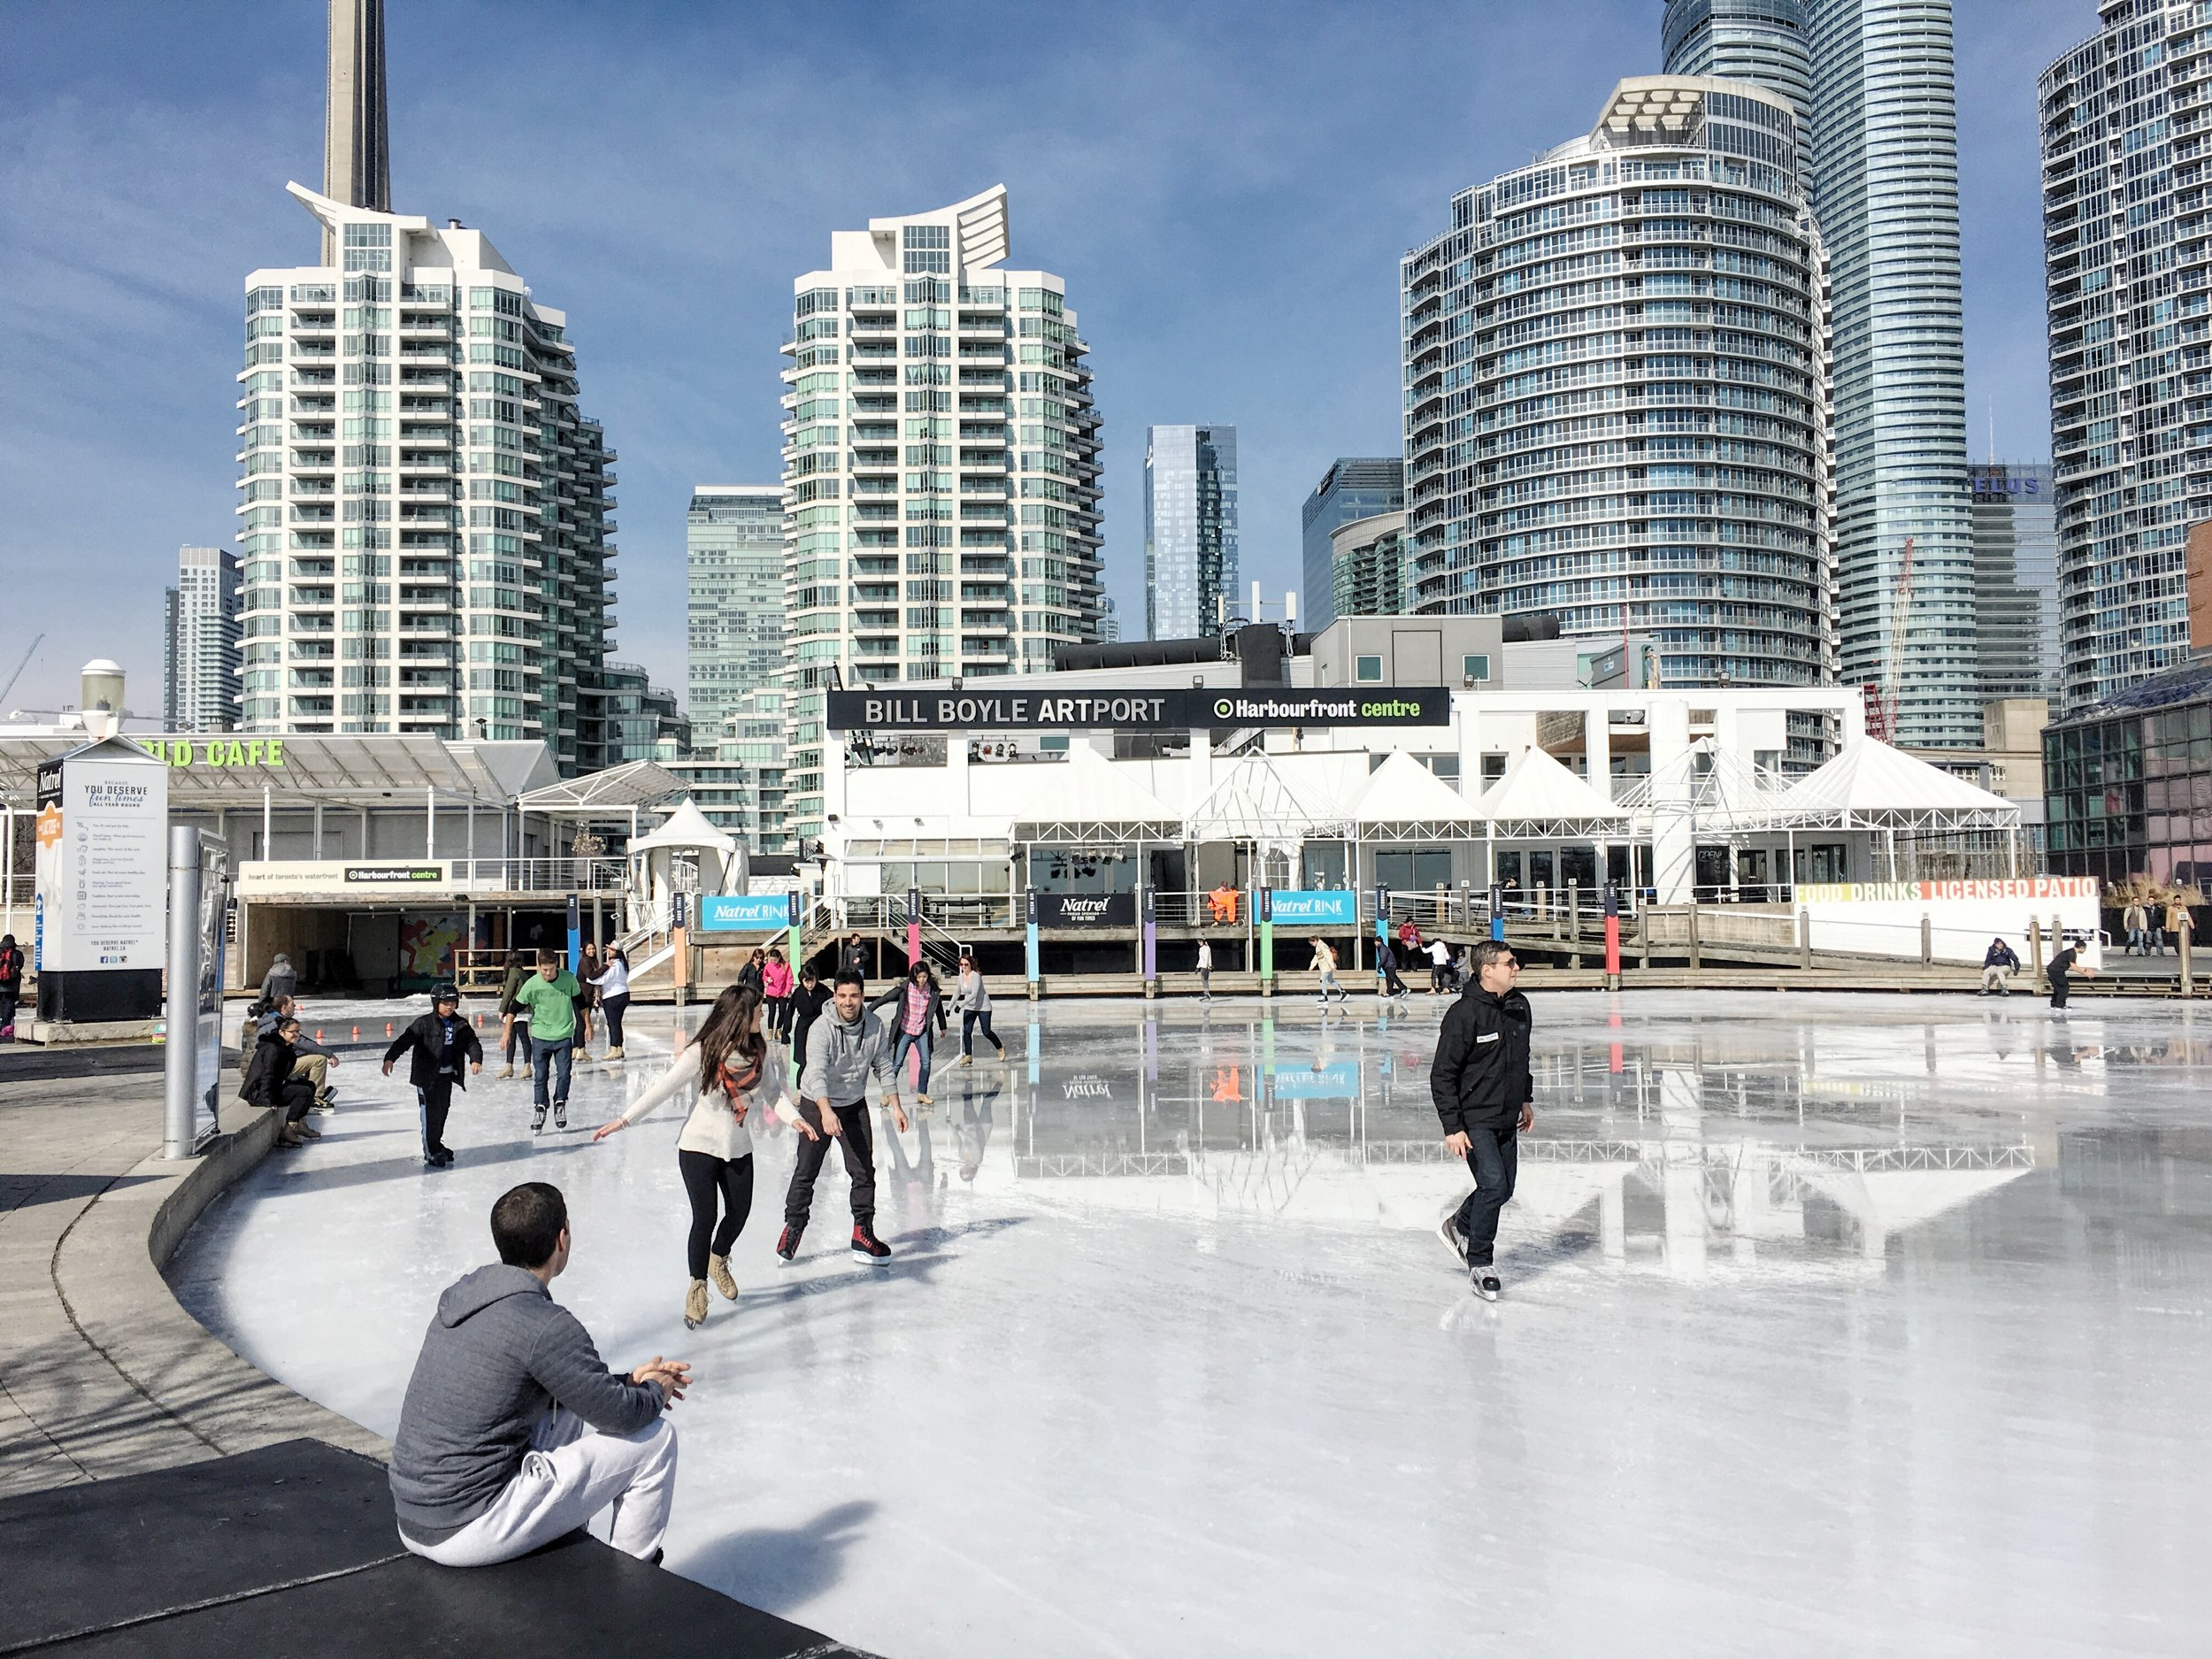 Harbour front rink